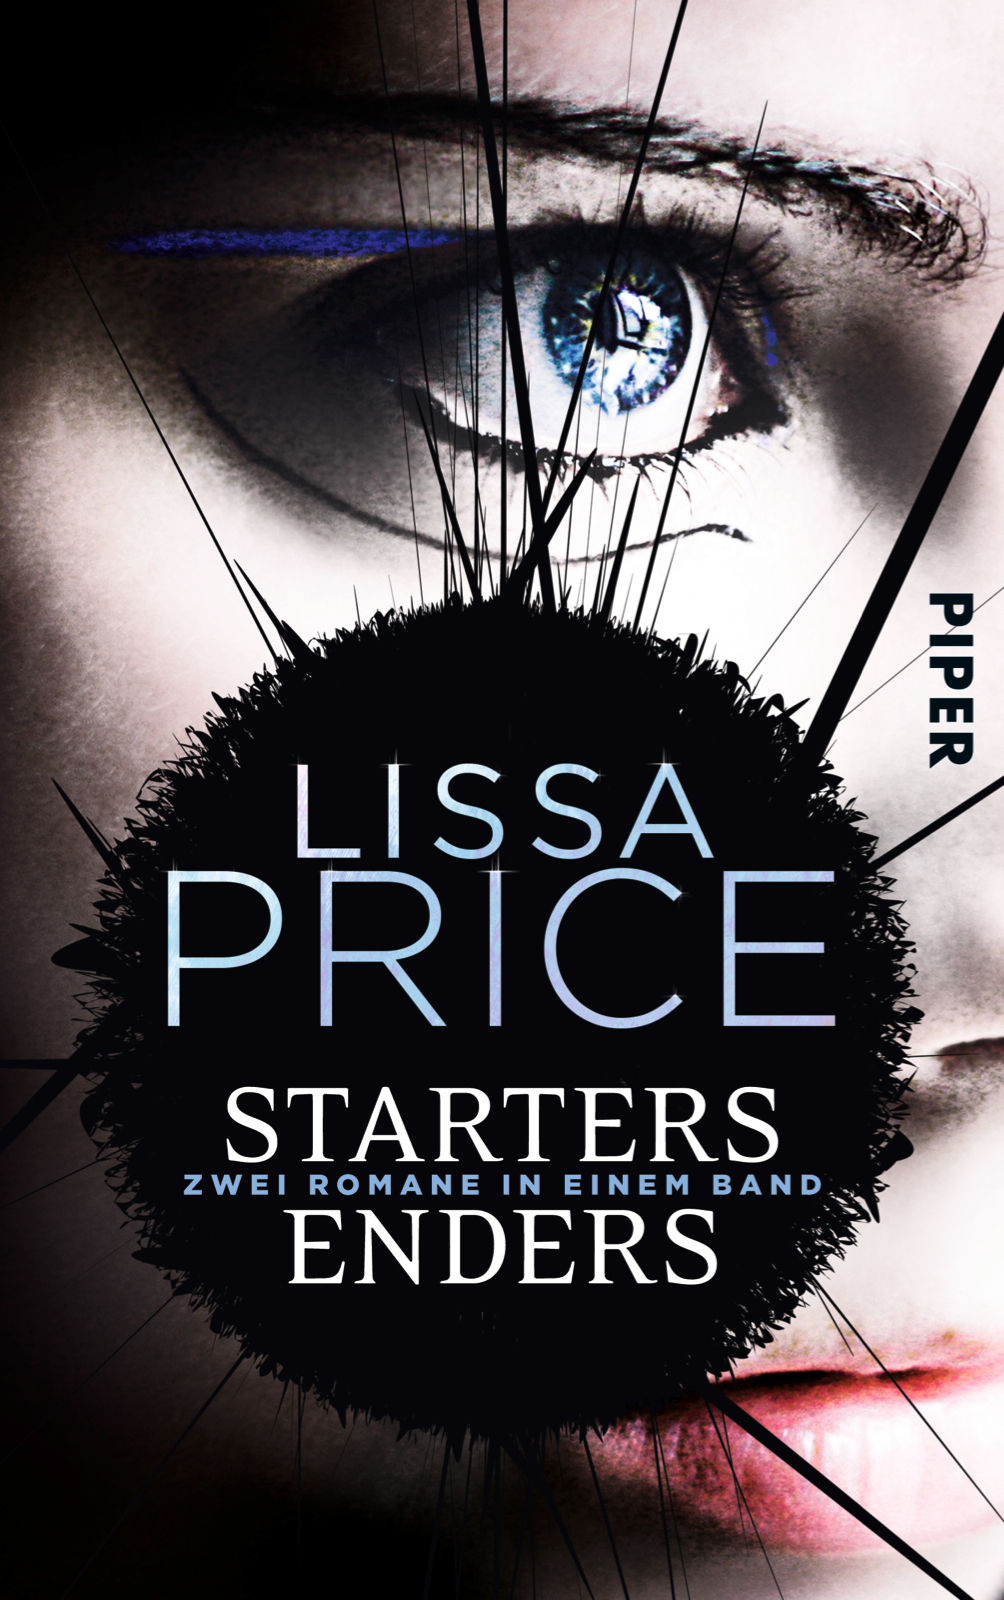 http://nothingbutn9erz.blogspot.co.at/2015/04/starters-enders-lissa-price-review.html